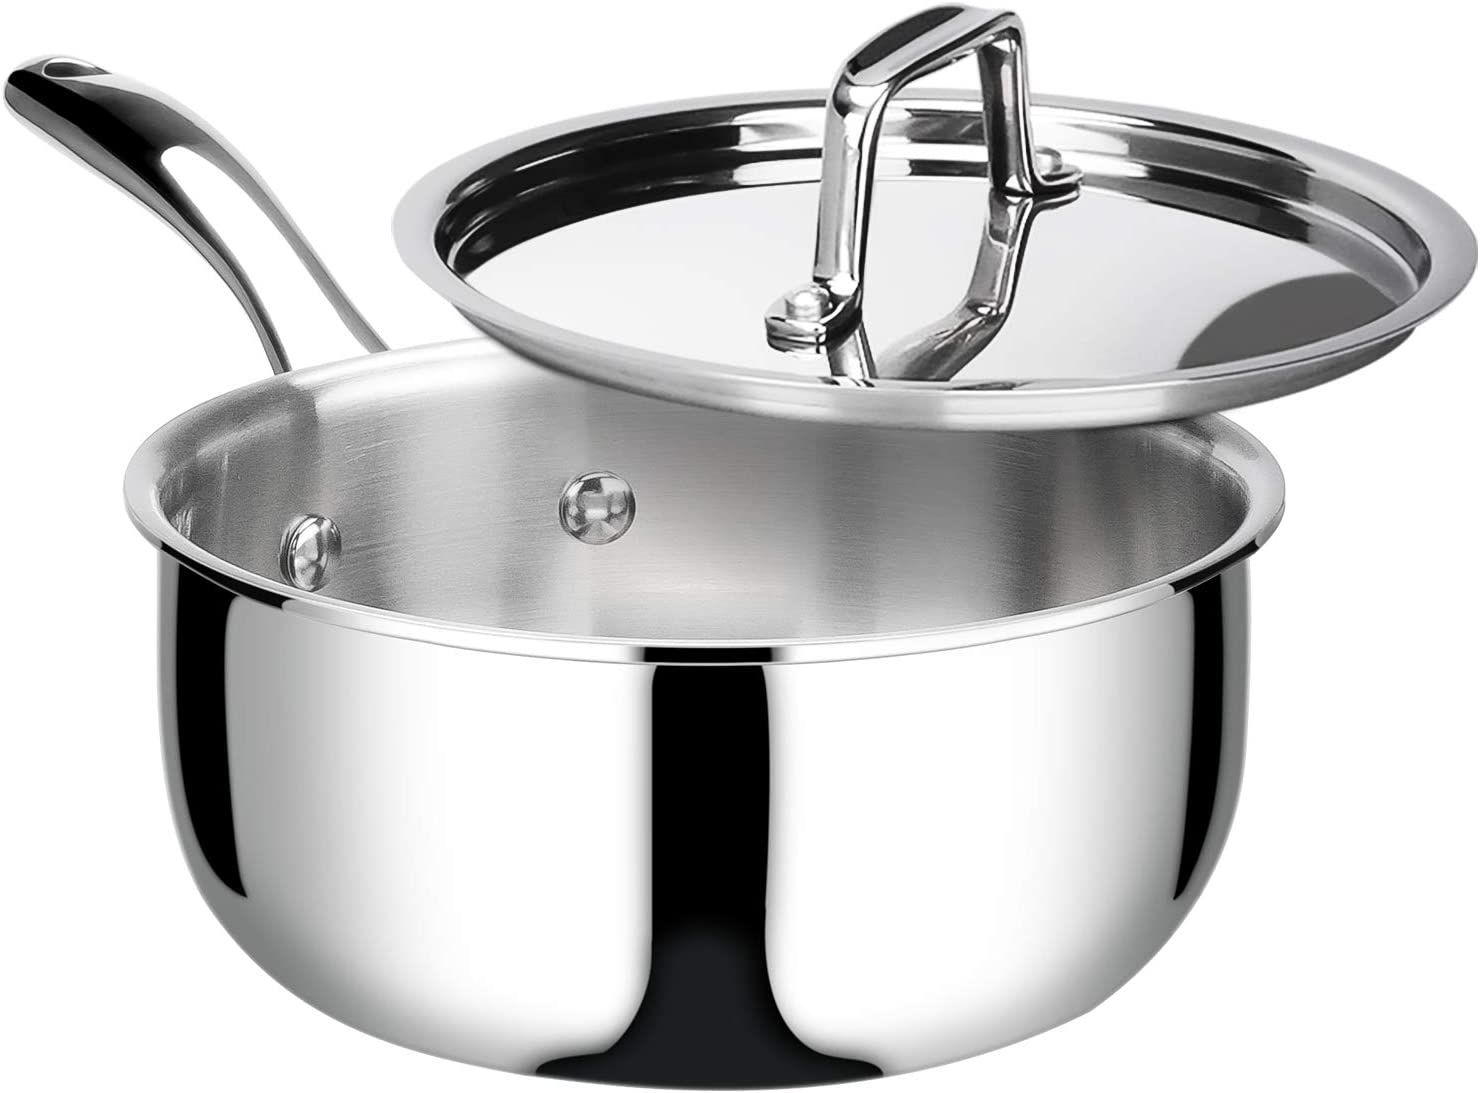 1.6-Quart Duxtop Whole-Clad Tri-Ply Stainless Steel Induction Ready Premium Cookware with Lid